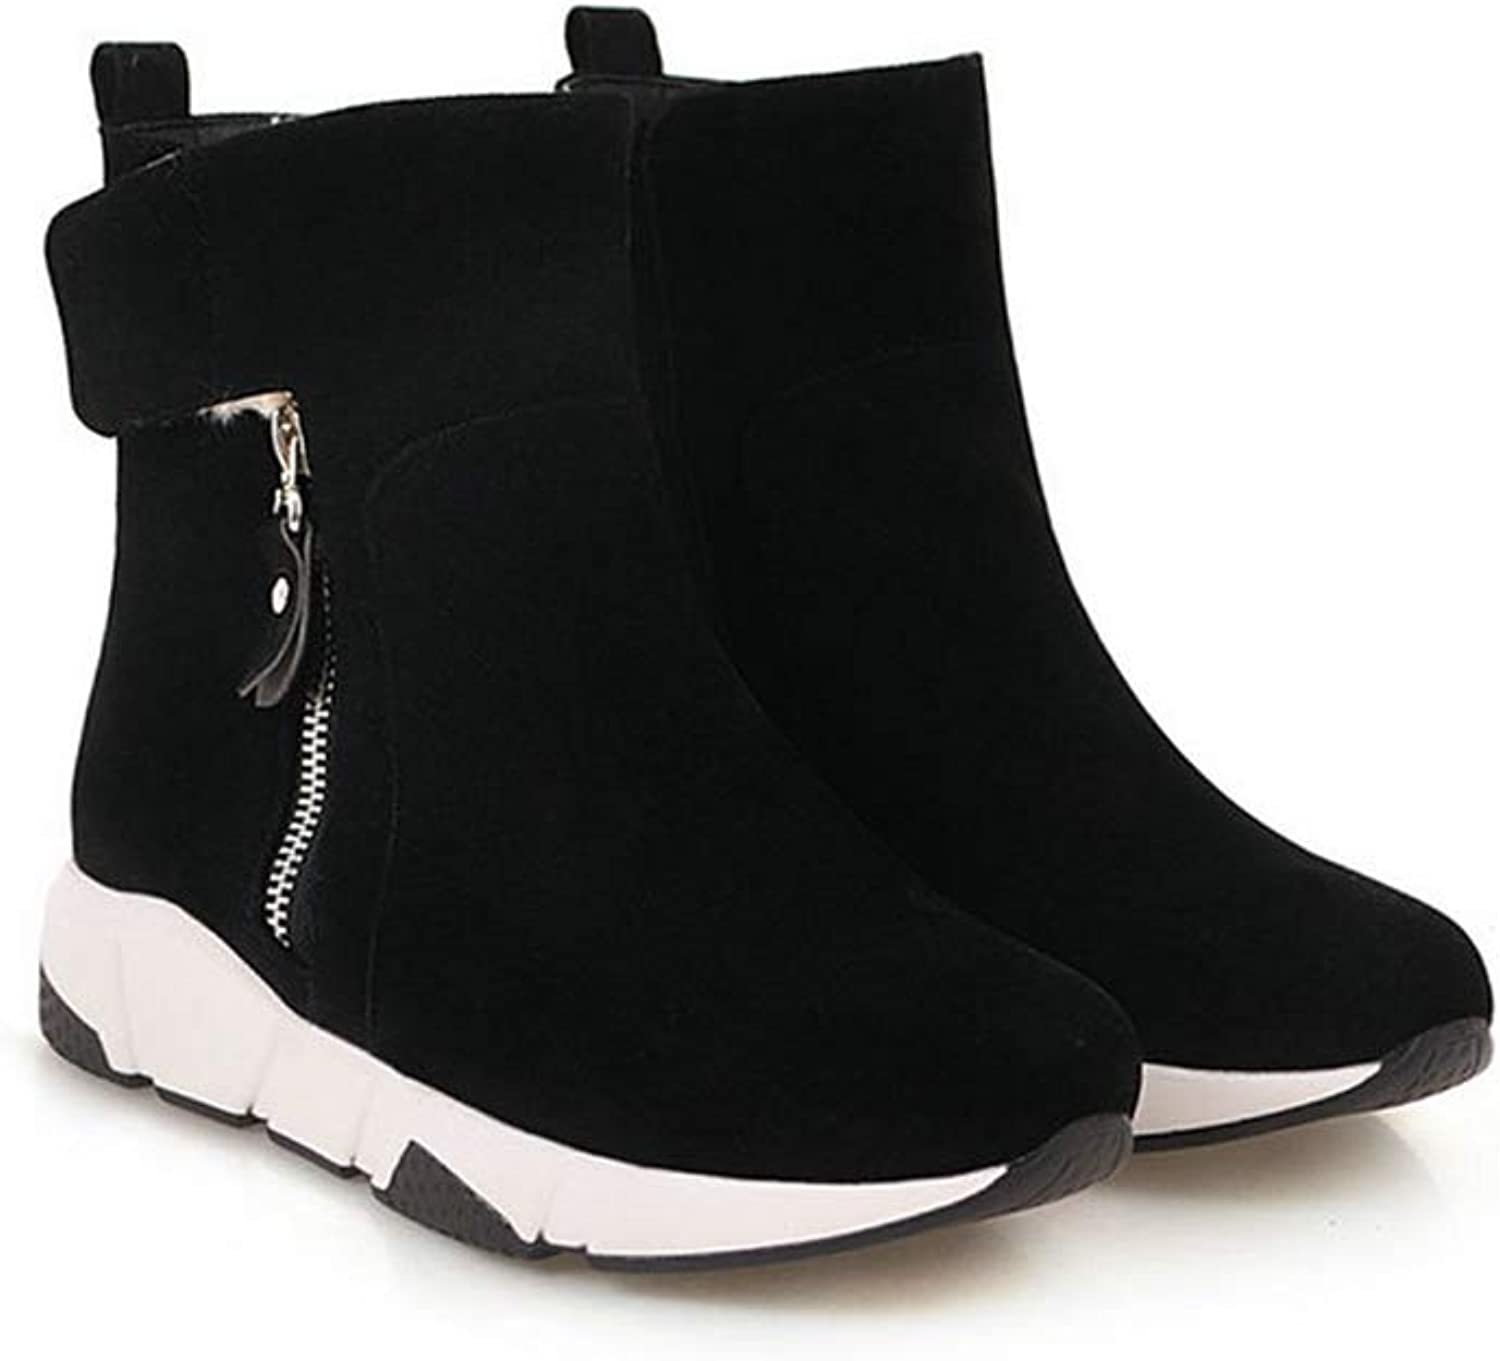 T-JULY Women's Fashion Flat Heels Boots Girl's Ankle Boots Spring Boots Brand Sock shoes Woman Botas